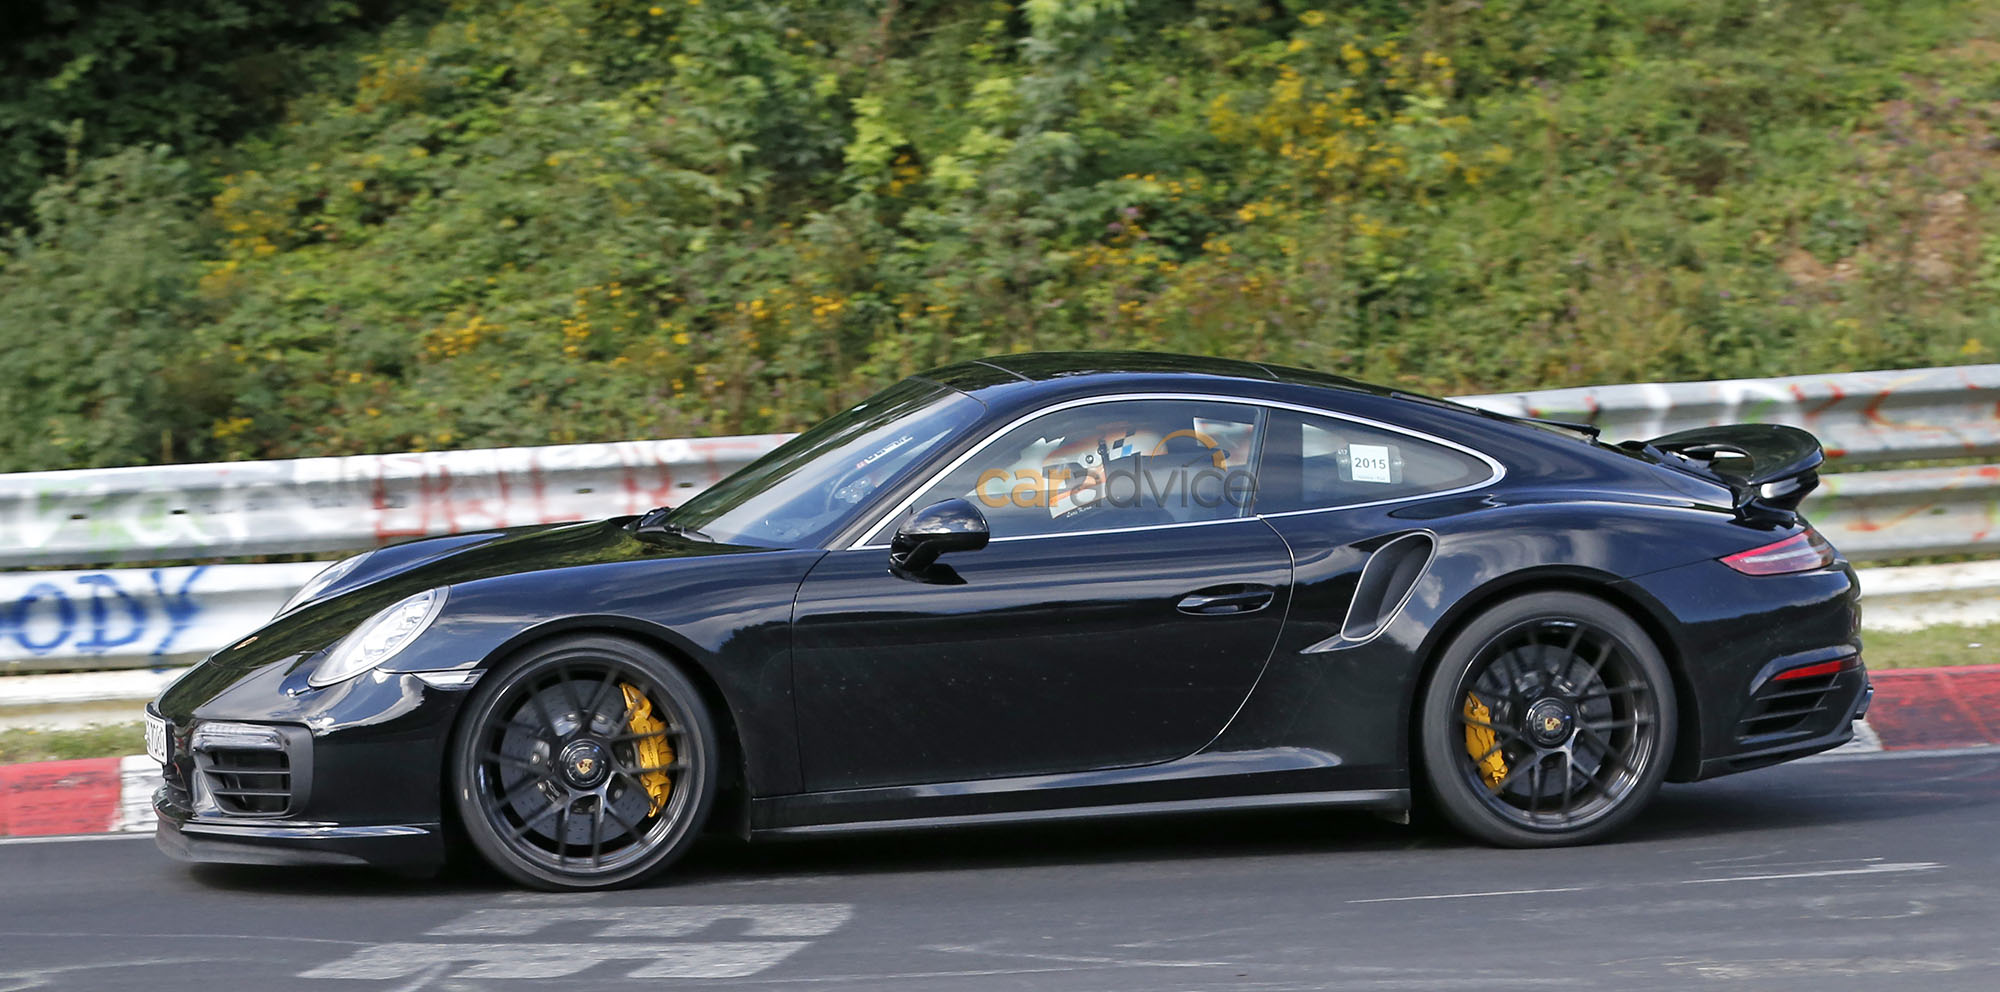 2016 porsche 911 turbo s facelift spied undisguised photos 1 of 3. Black Bedroom Furniture Sets. Home Design Ideas